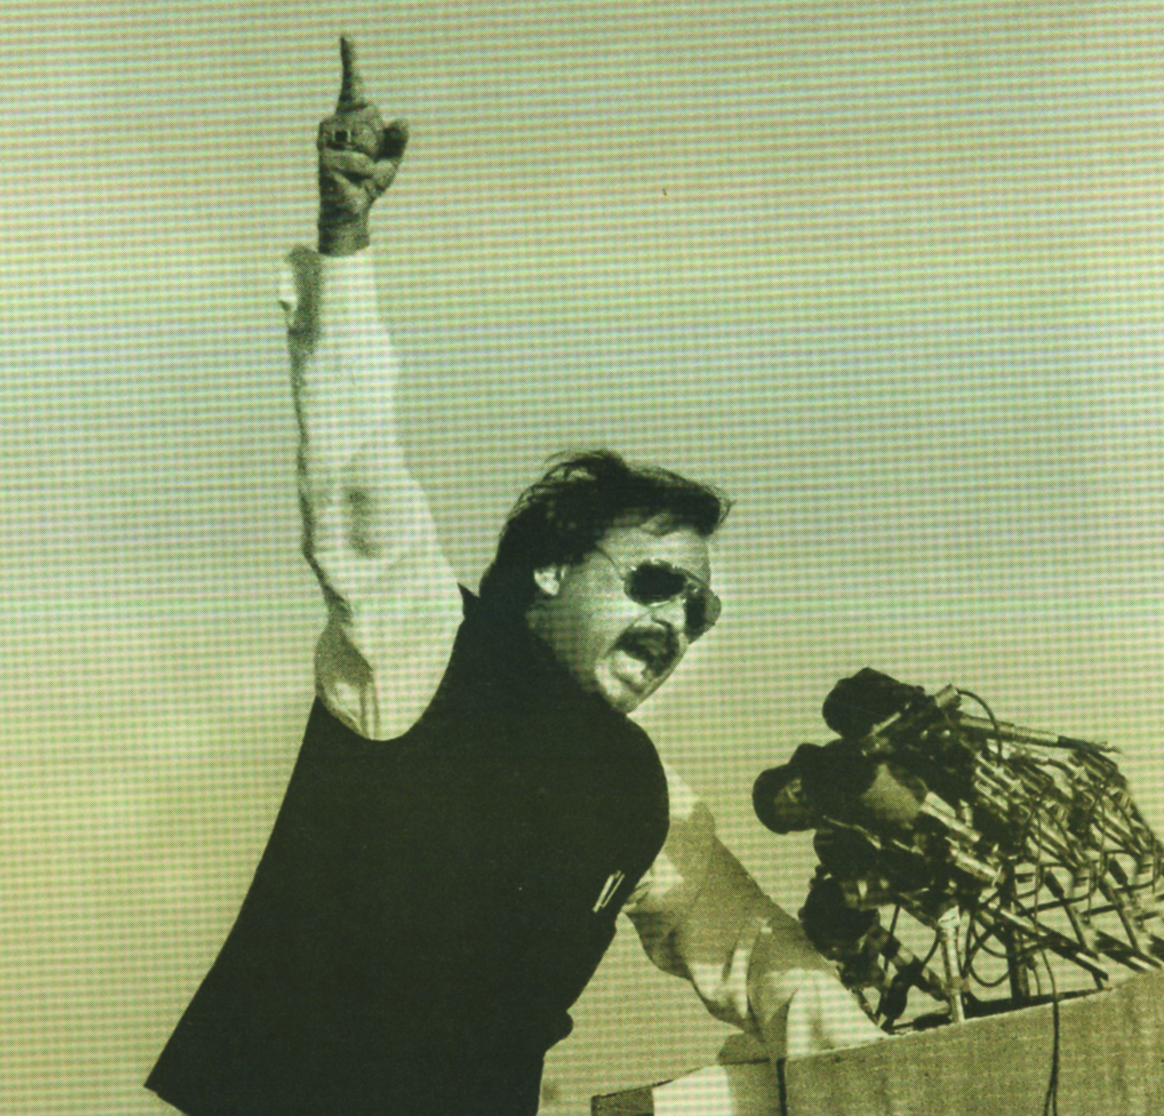 Altaf Hussain addresses hundreds of thousands of people at Shaheah-e-Quaideen, August 23, 1990.  Photo courtesy: Pictoral Biography of Altaf Hussain